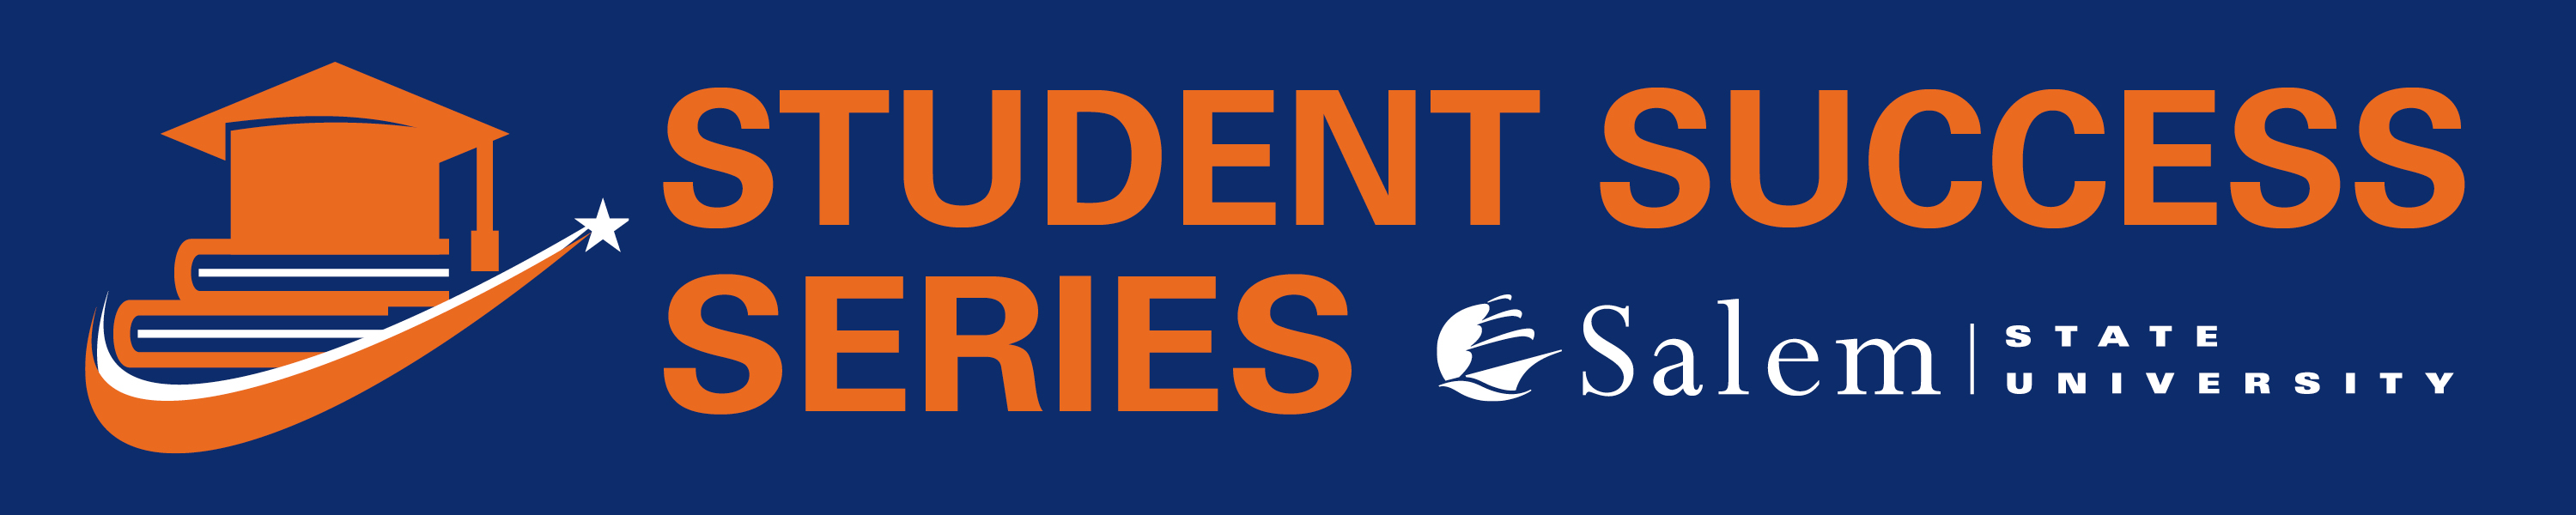 "Graphic with words ""Student Success Series Salem State University"""